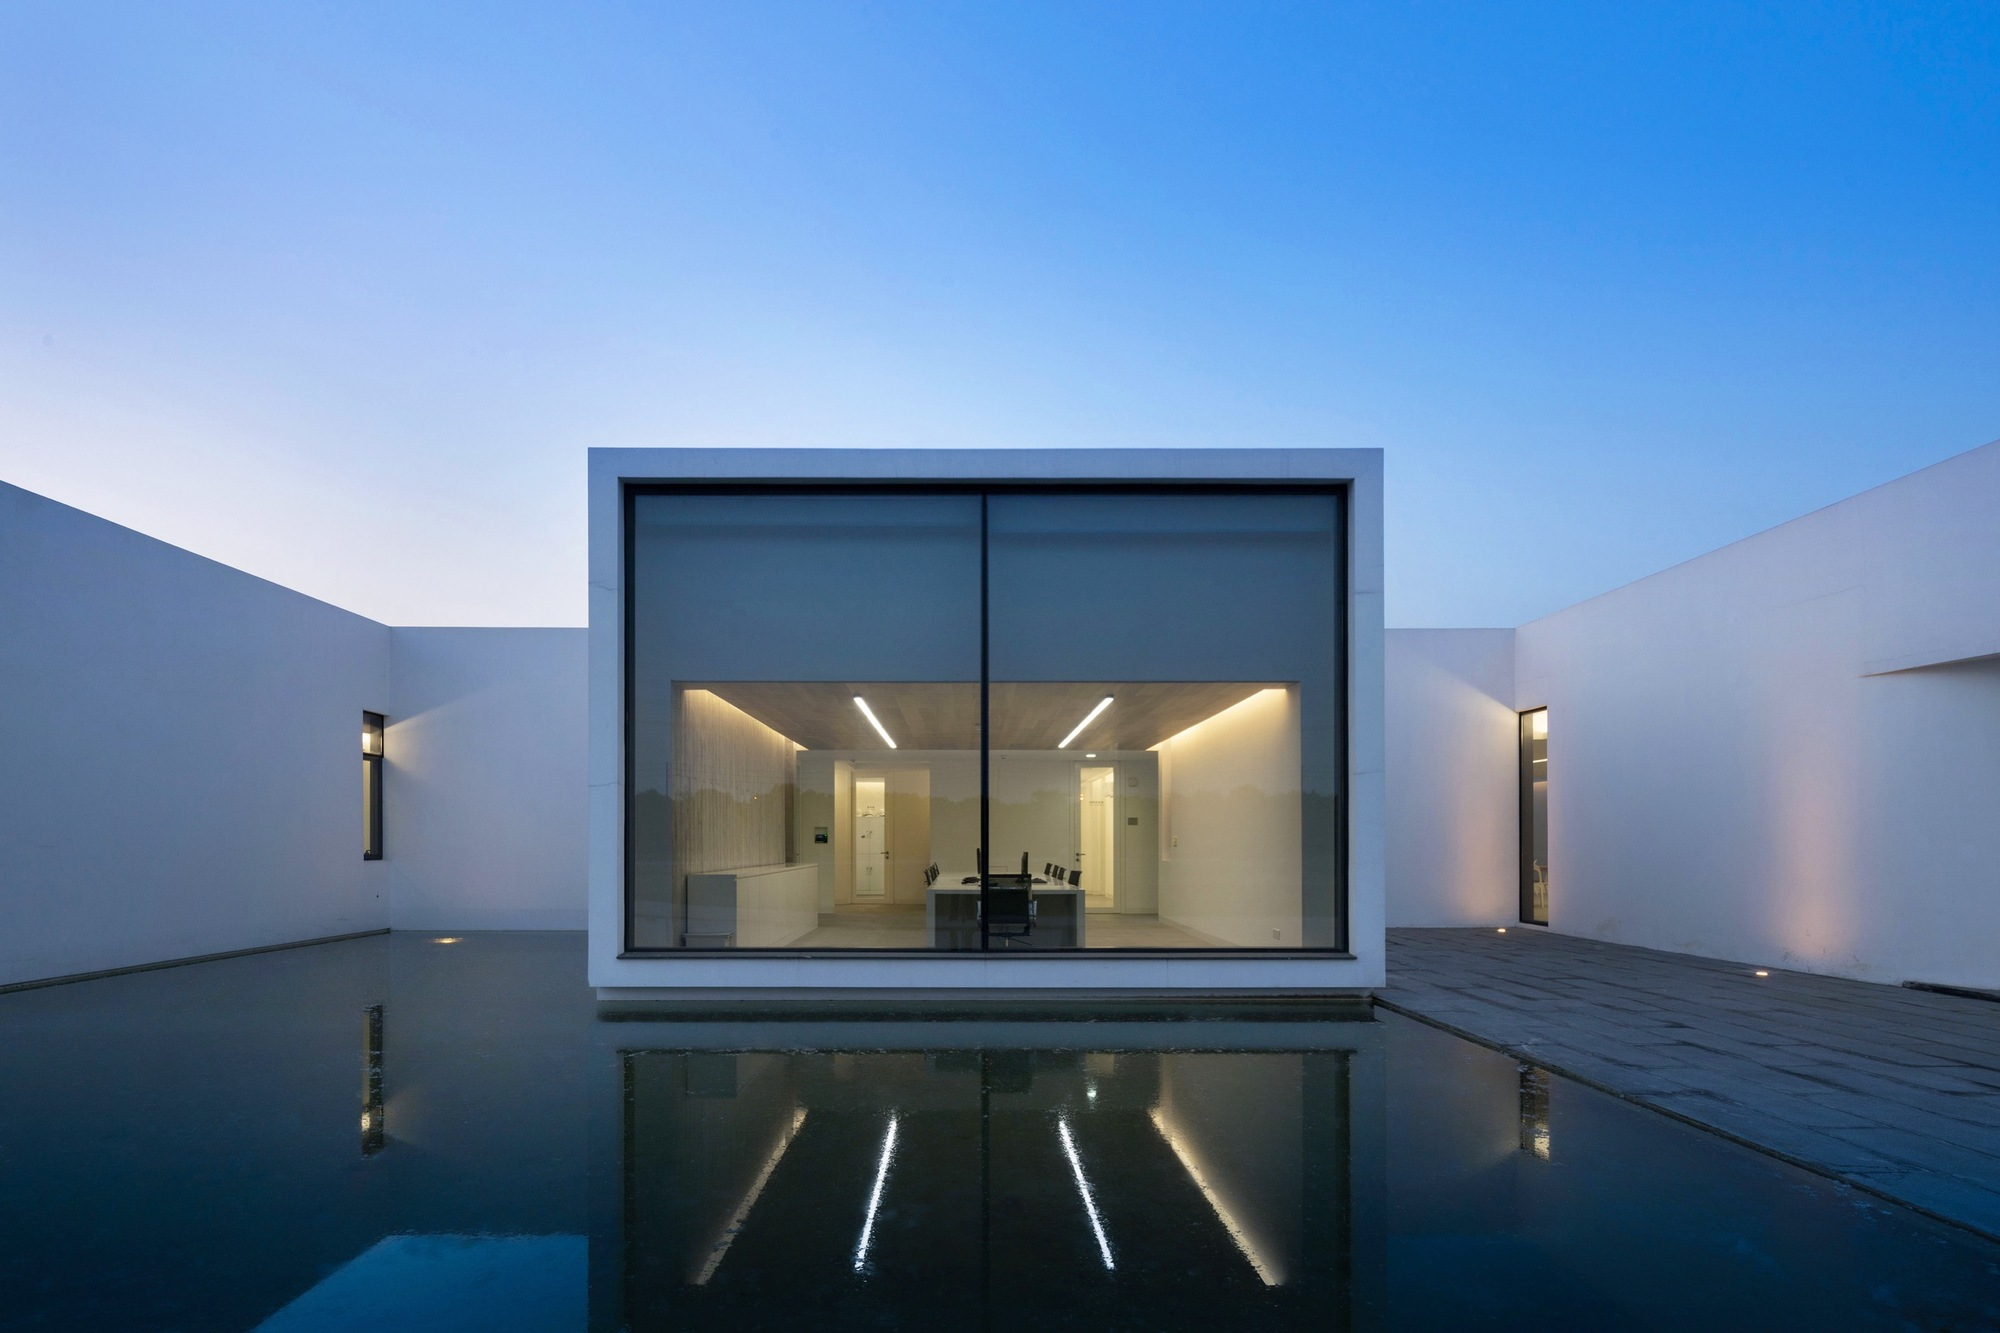 Laboratory architecture and design   ArchDaily